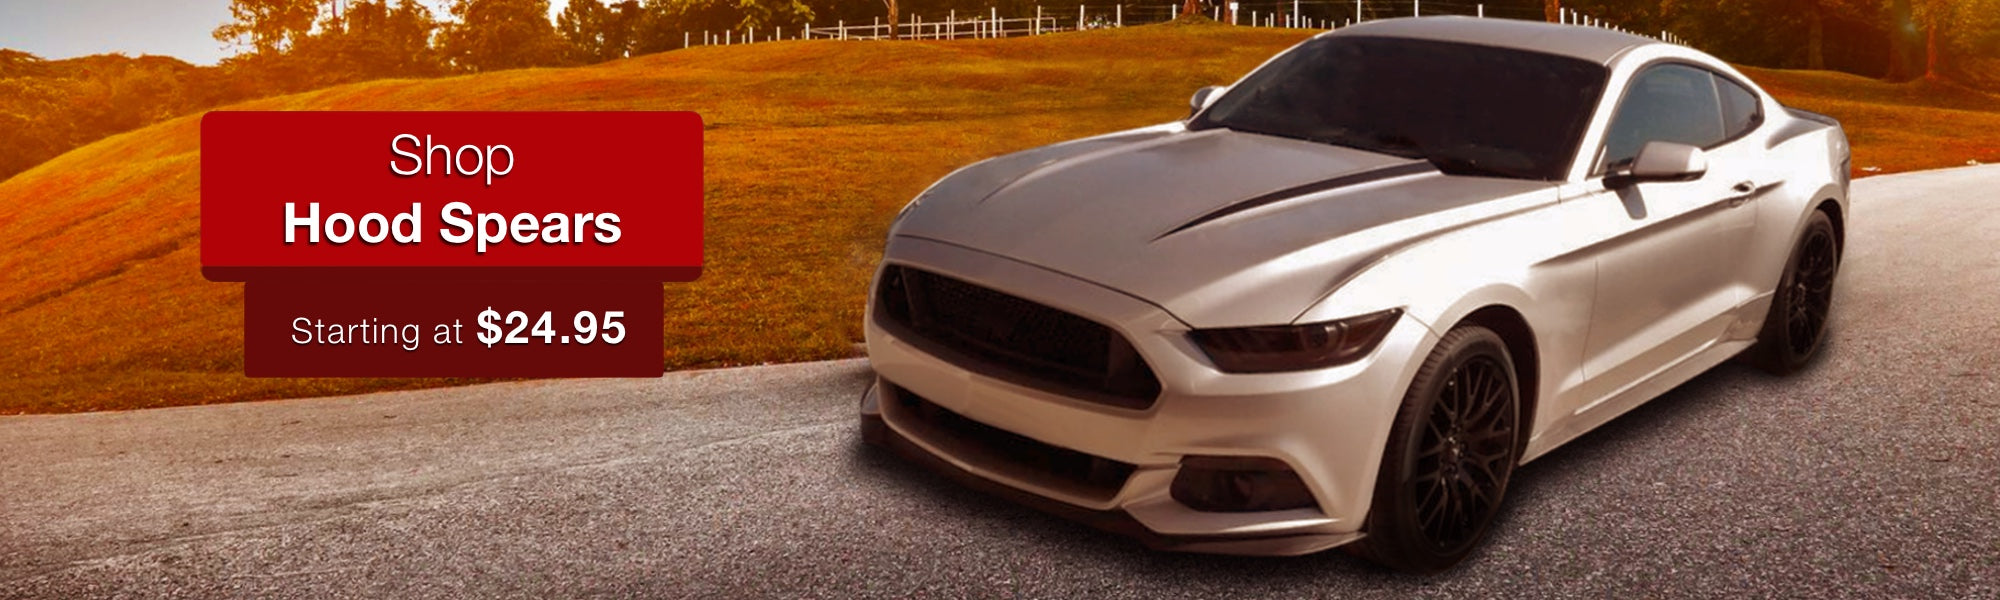 2015 2016 2017 ford Mustang Hood spears cowl decal vinyl product page